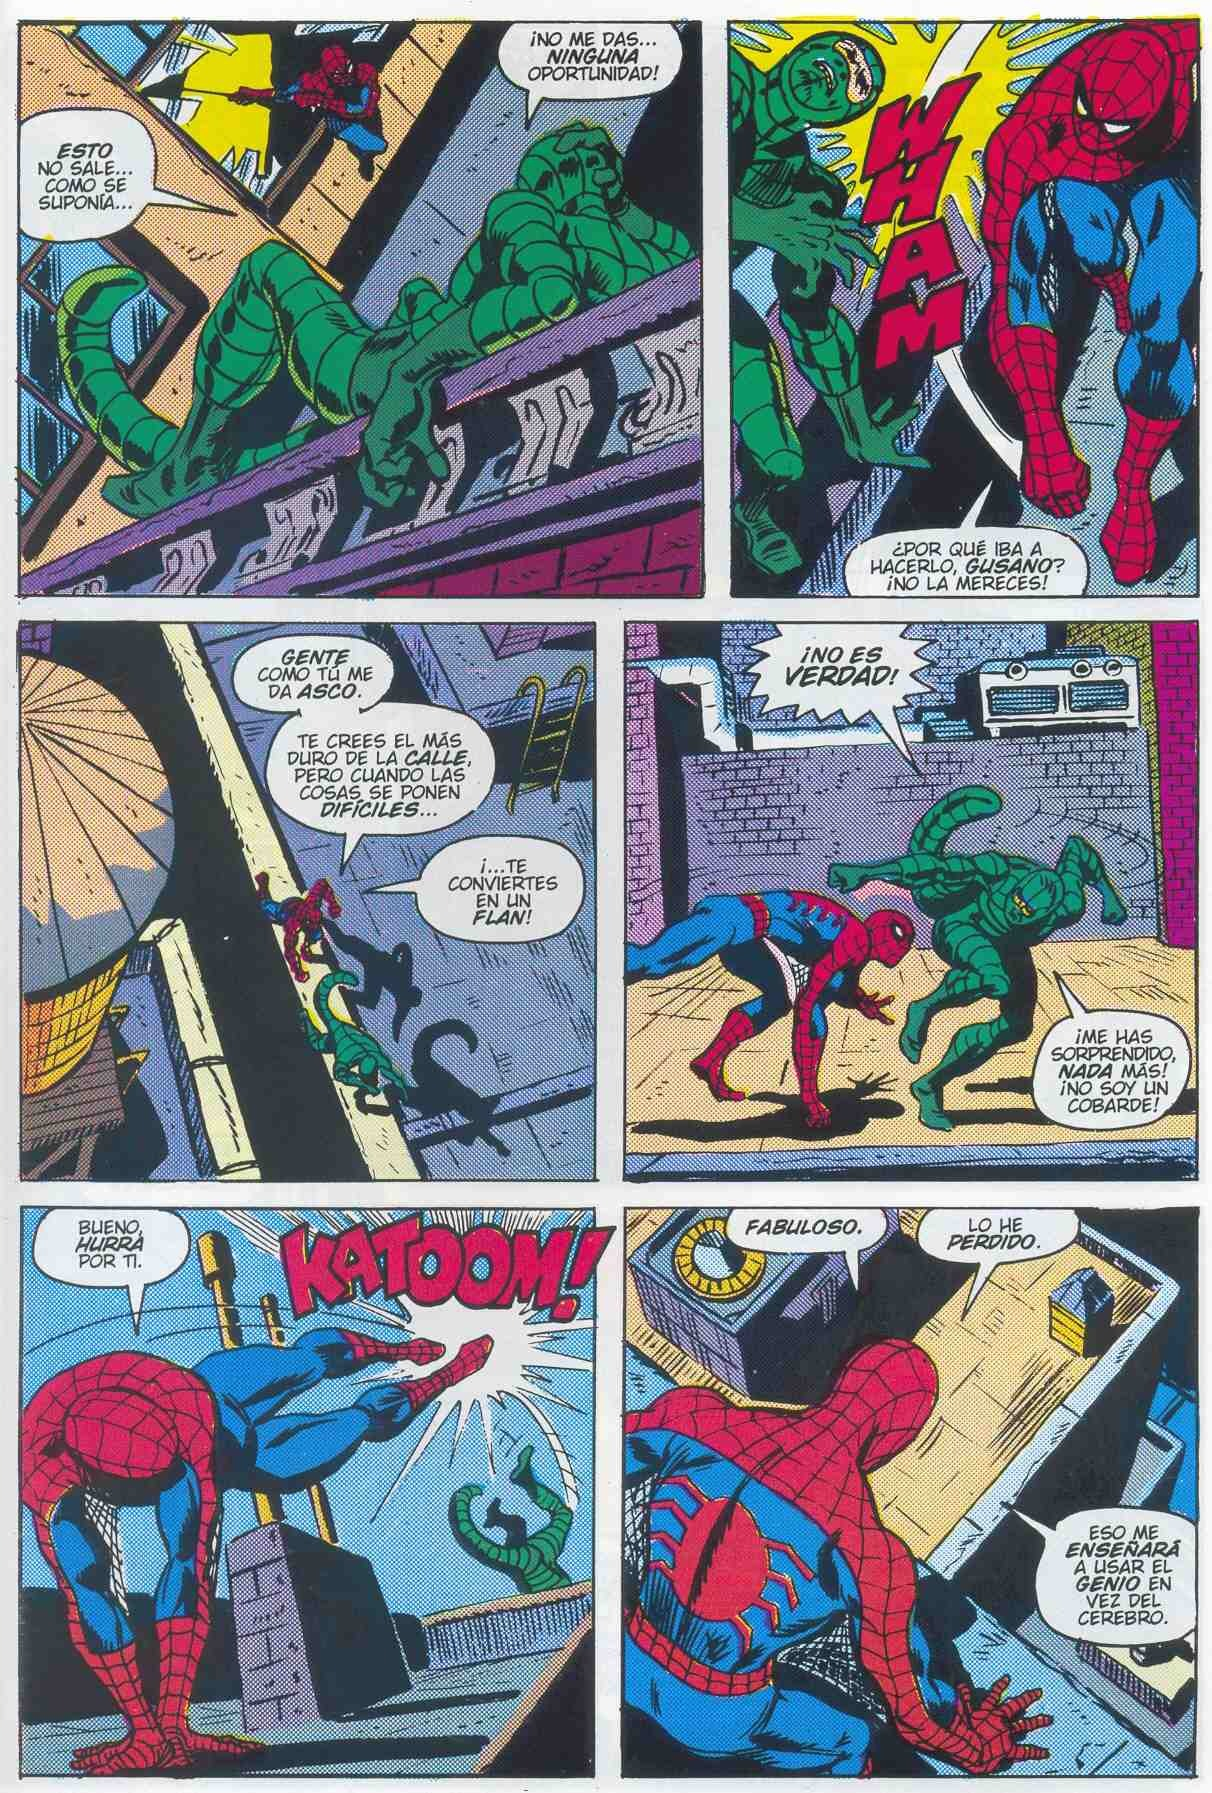 The Amazing Spider-Man #146